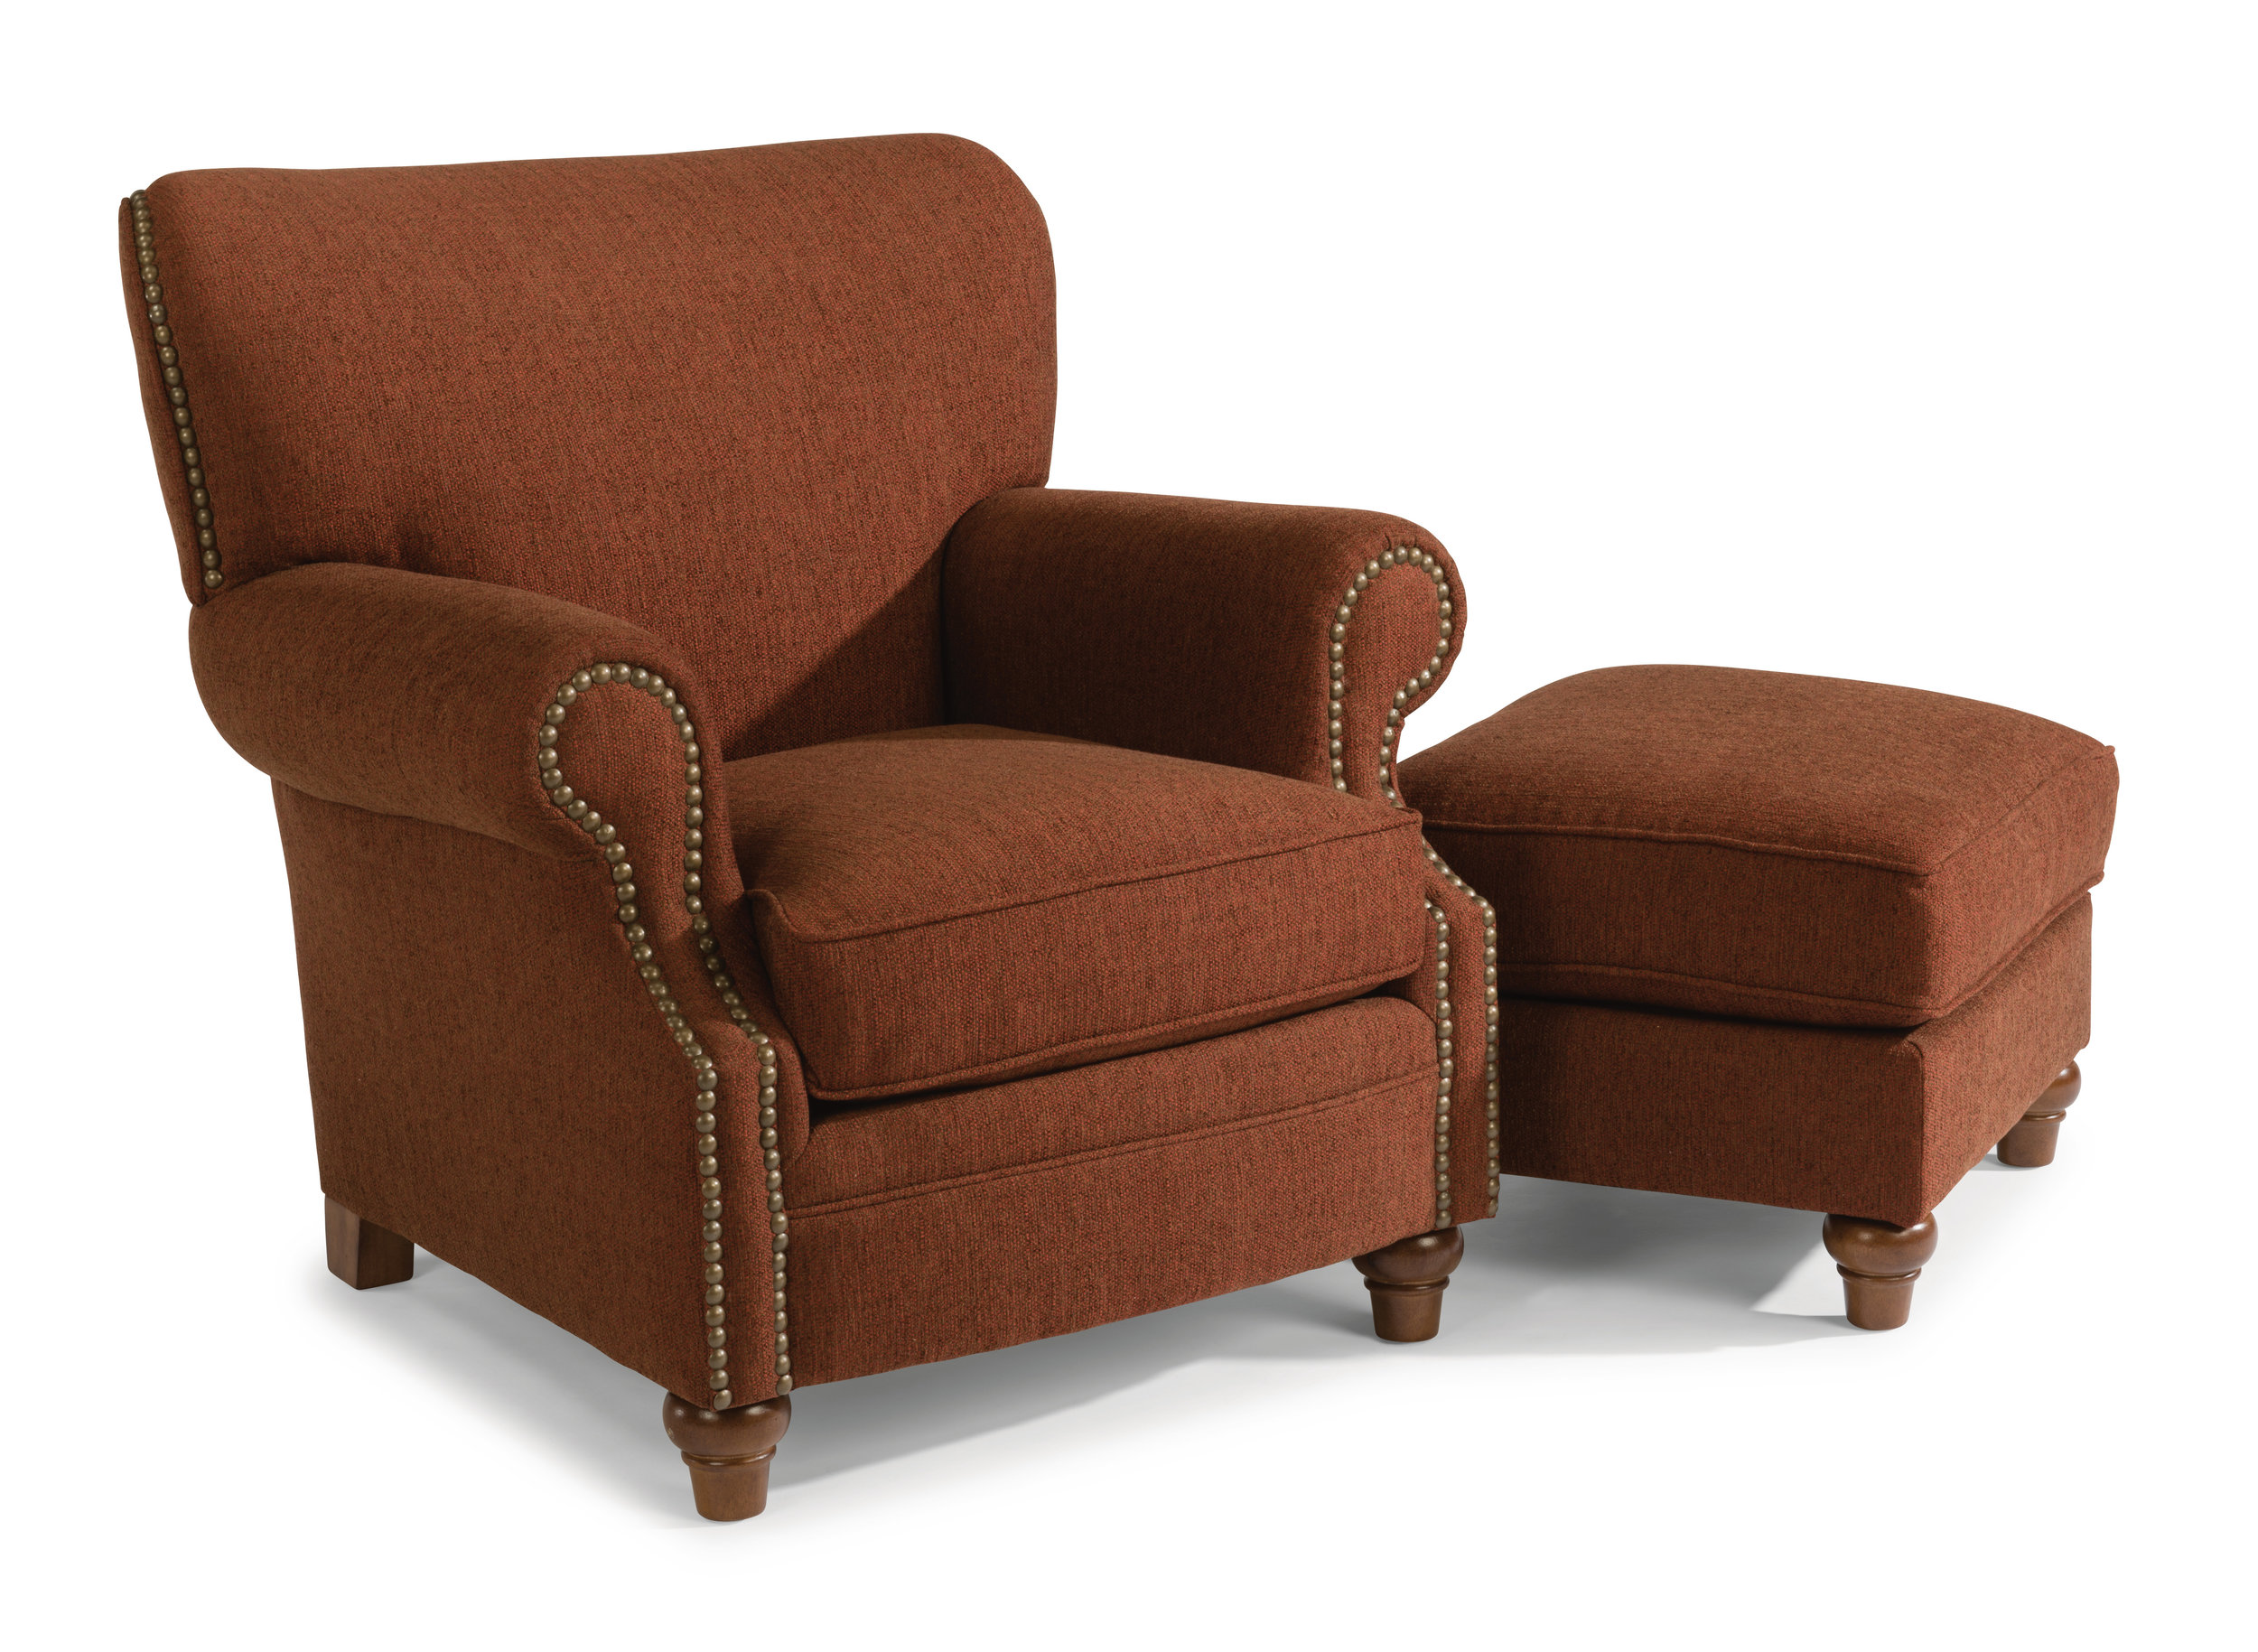 Killarney Chair & Ottoman by Flexsteel